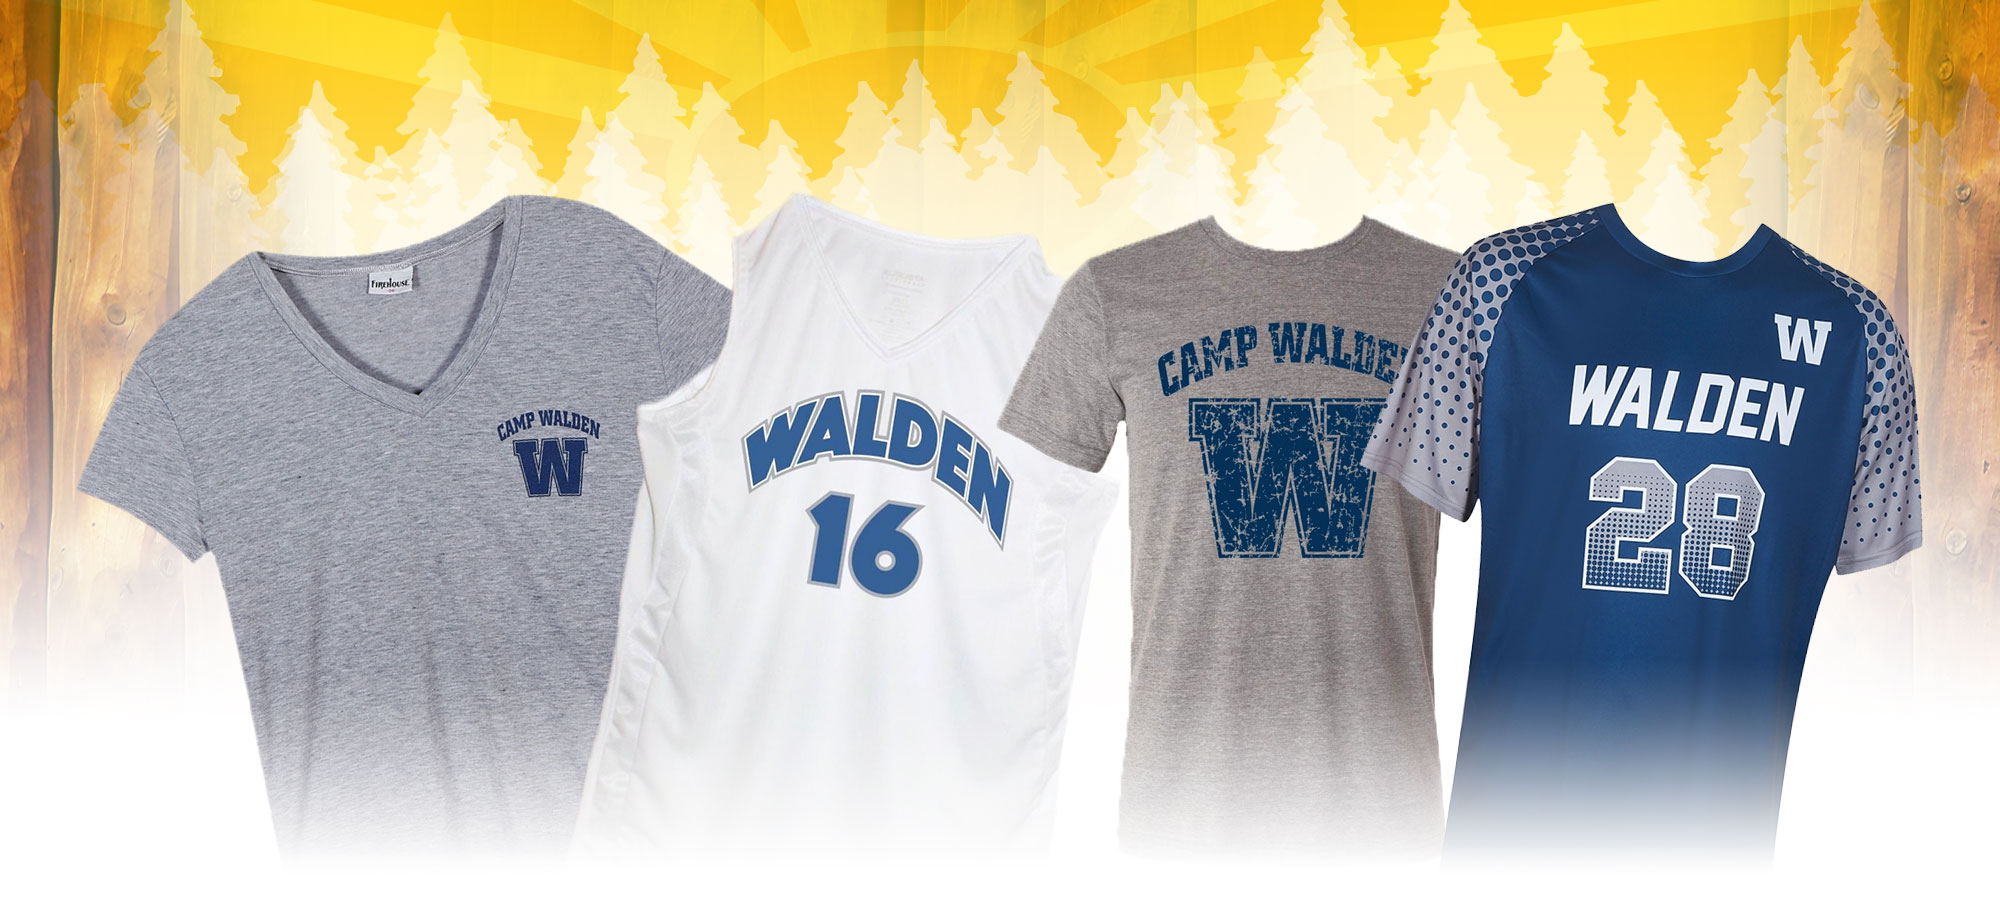 Camp Walden Summer Camp Store